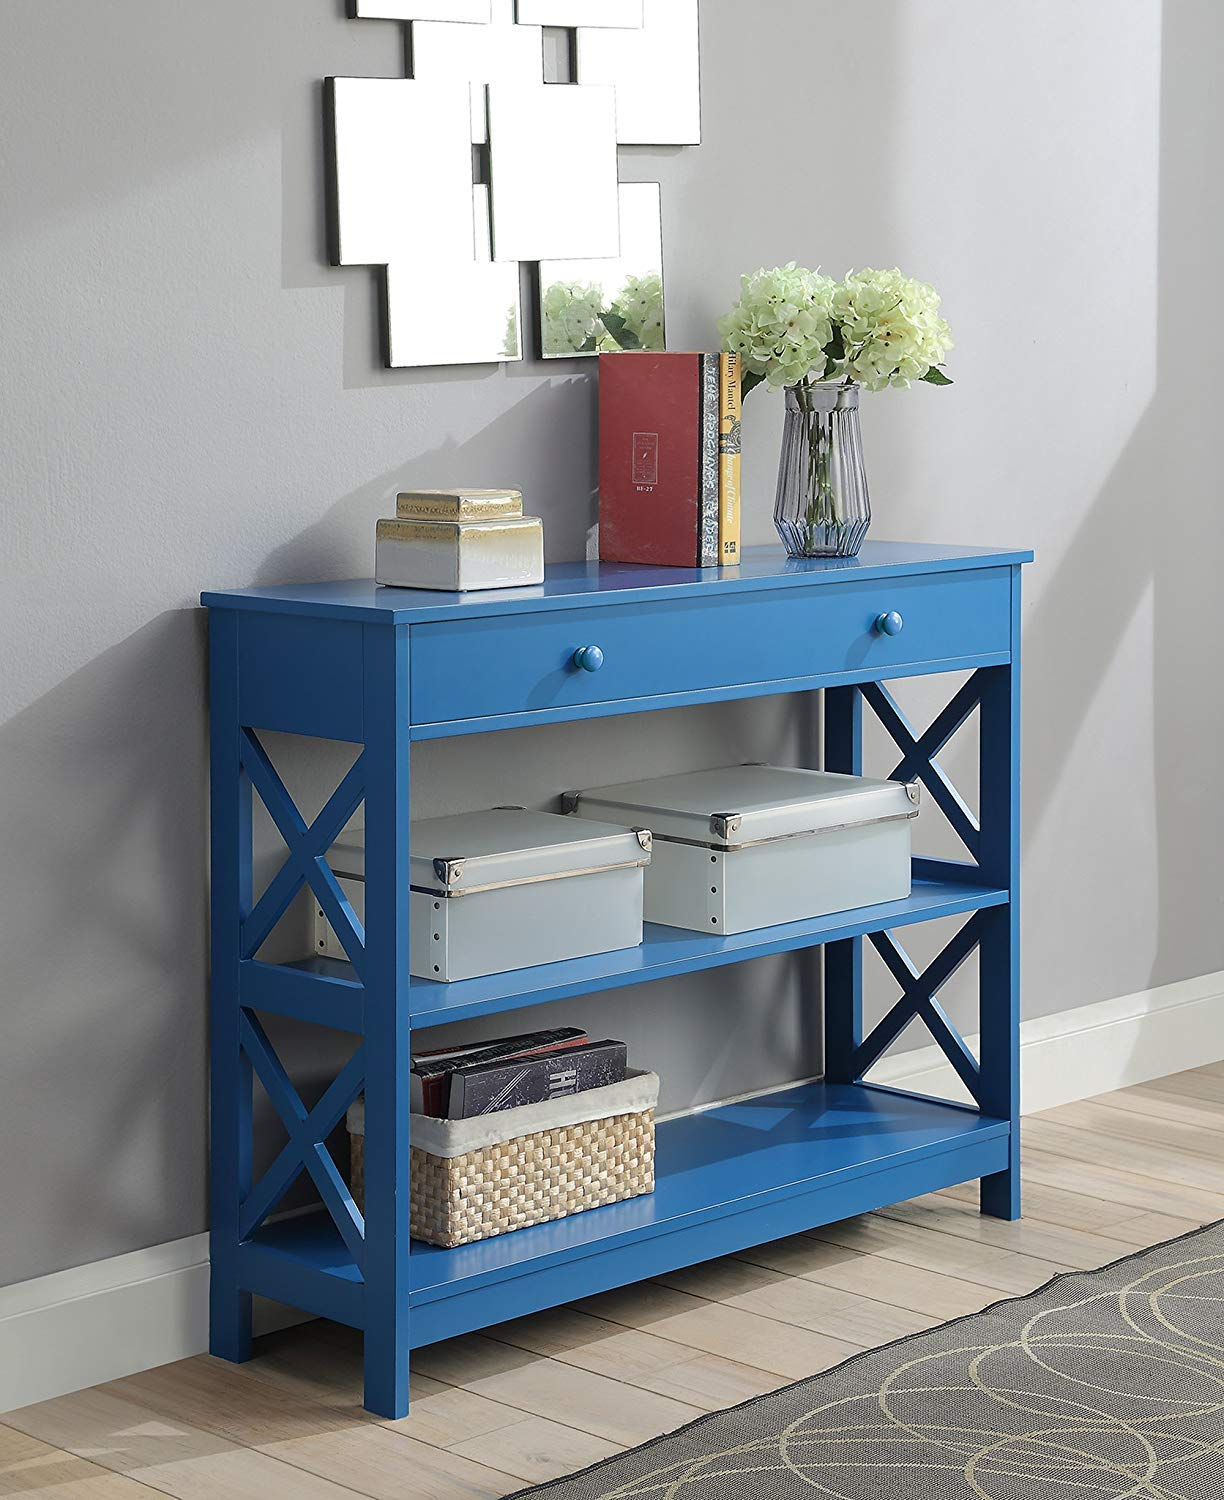 vibrant-blue-console-table-with-single-drawer-and-two-shelves-for-creative-entryway-interior-design